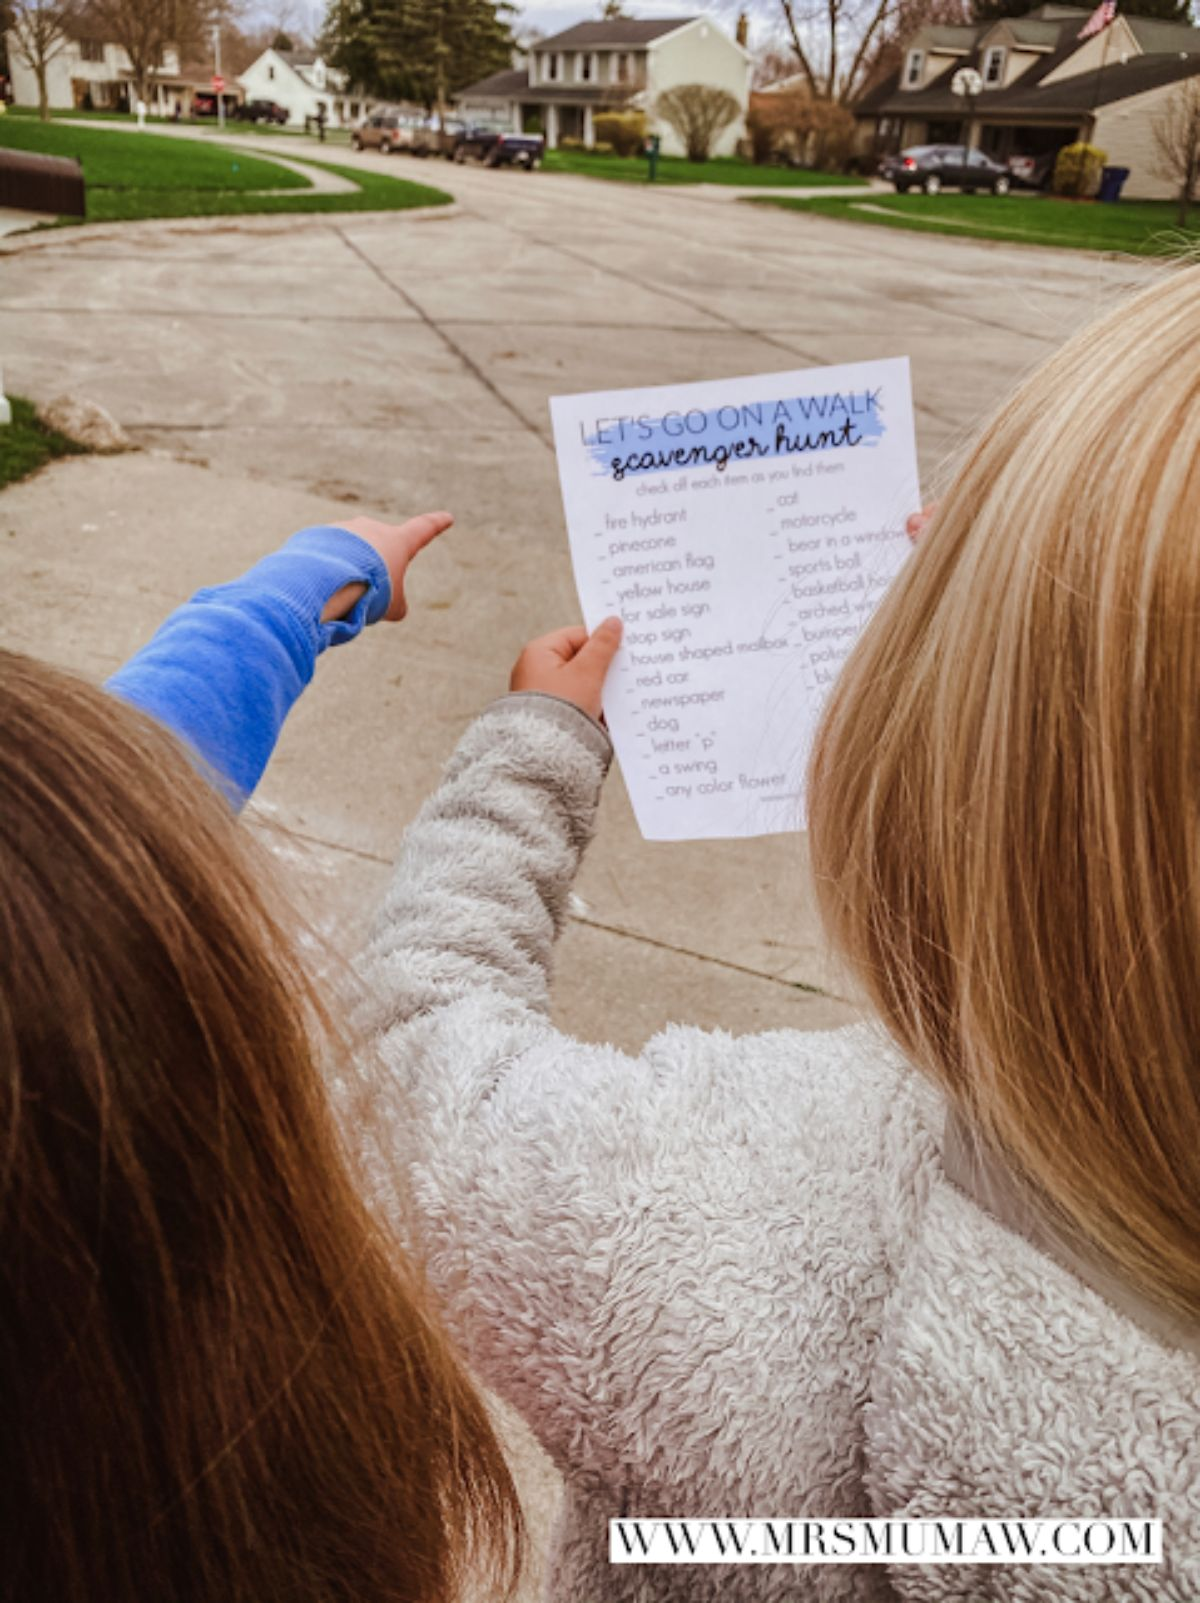 2 children point off into the distance as they are walking through a neighborhood residential street. One of them is holding a sheet of paper with writing on it